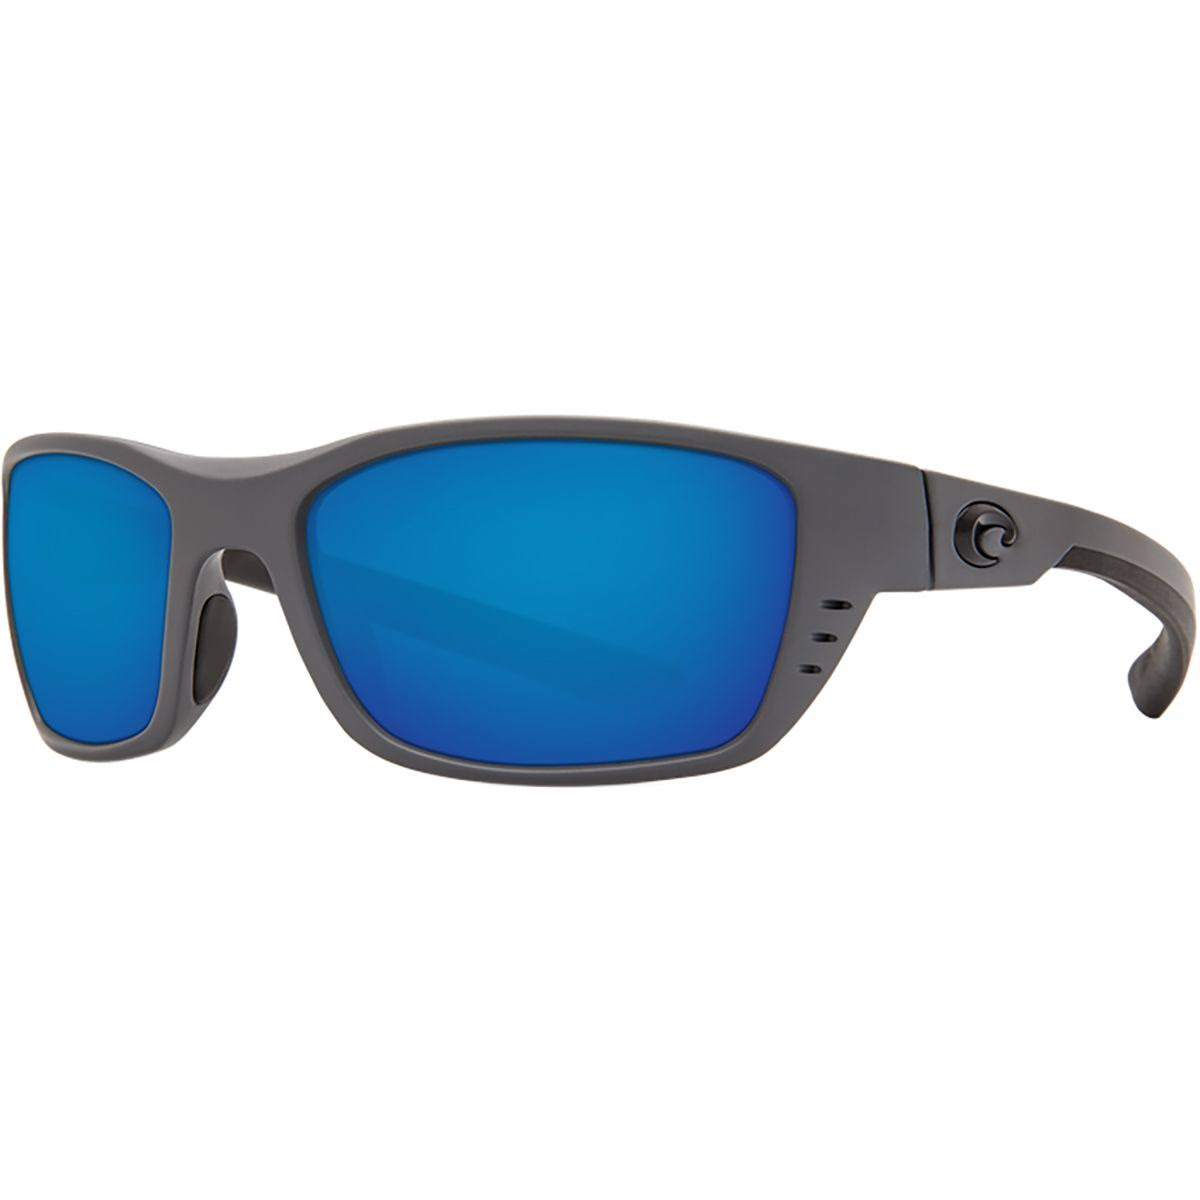 Costa Del Mar Whitetip Sunglasses - Matte Gray Frame, 580p Blue Mirror